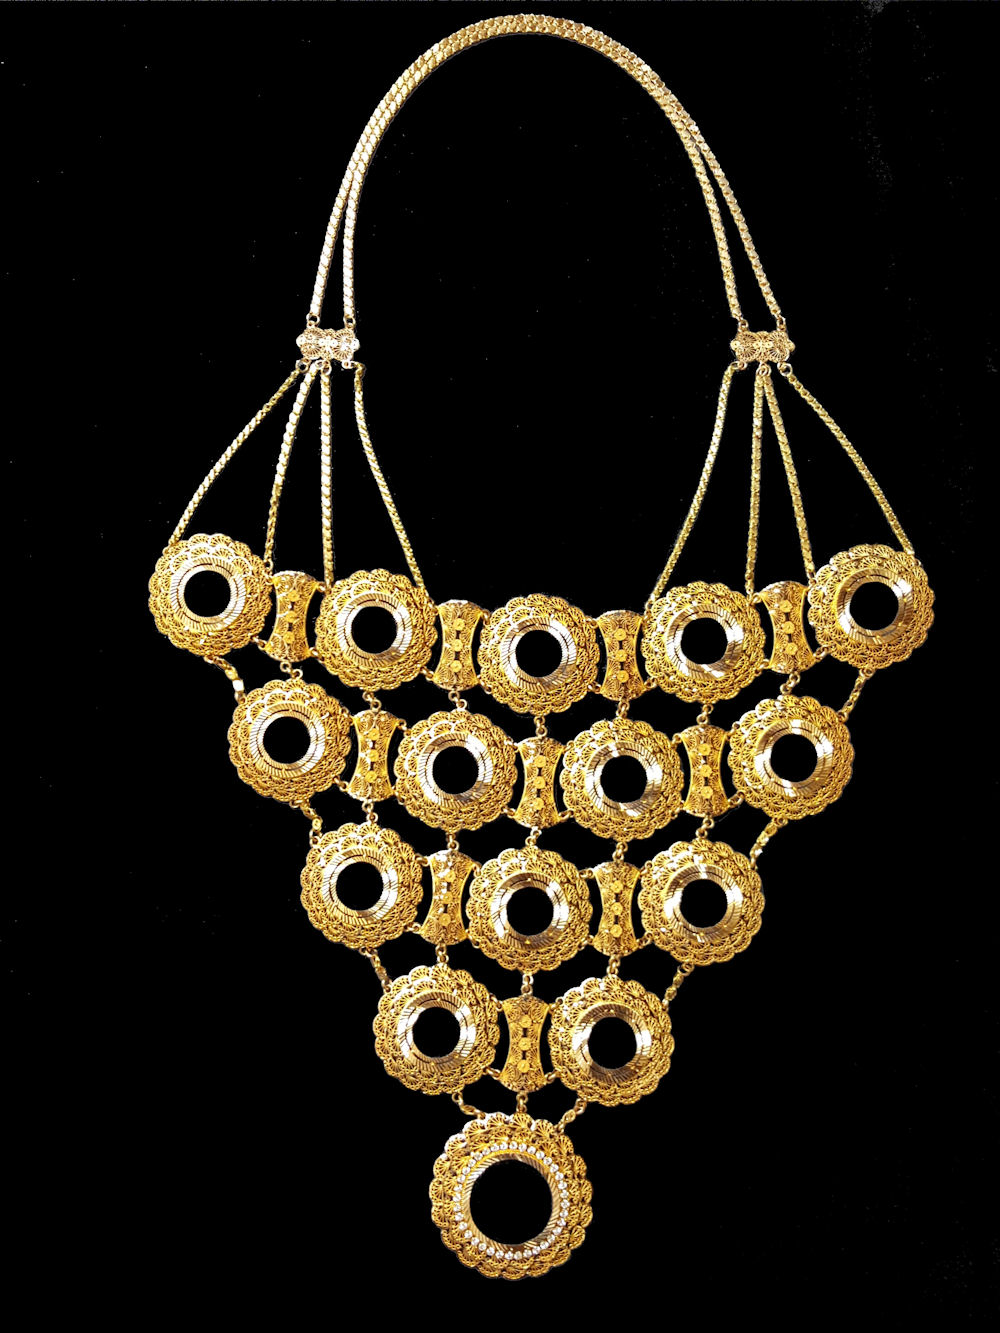 21k gold coin necklace (8001) – Alquds Jewelry